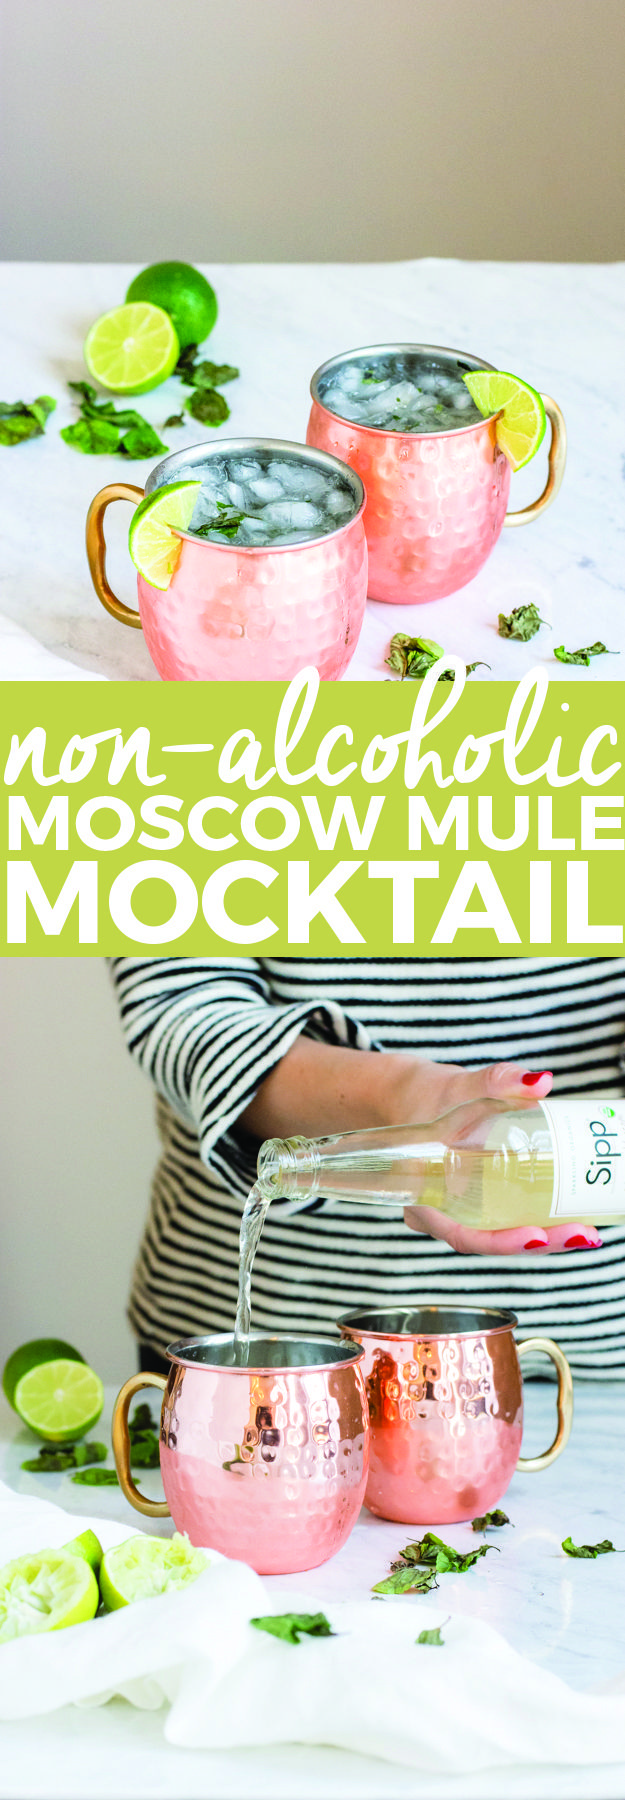 Non-Alcoholic Moscow Mule Mocktail | homemade mocktail, mocktail recipe, easy mocktail recipes, holiday drink recipes, non-alcoholic drink recipes, non-alcoholic mocktail recipes, classic mocktail recipes || The Butter Half via @thebutterhalf #mocktails #mocktailrecipe #moscowmule #nonalcoholic